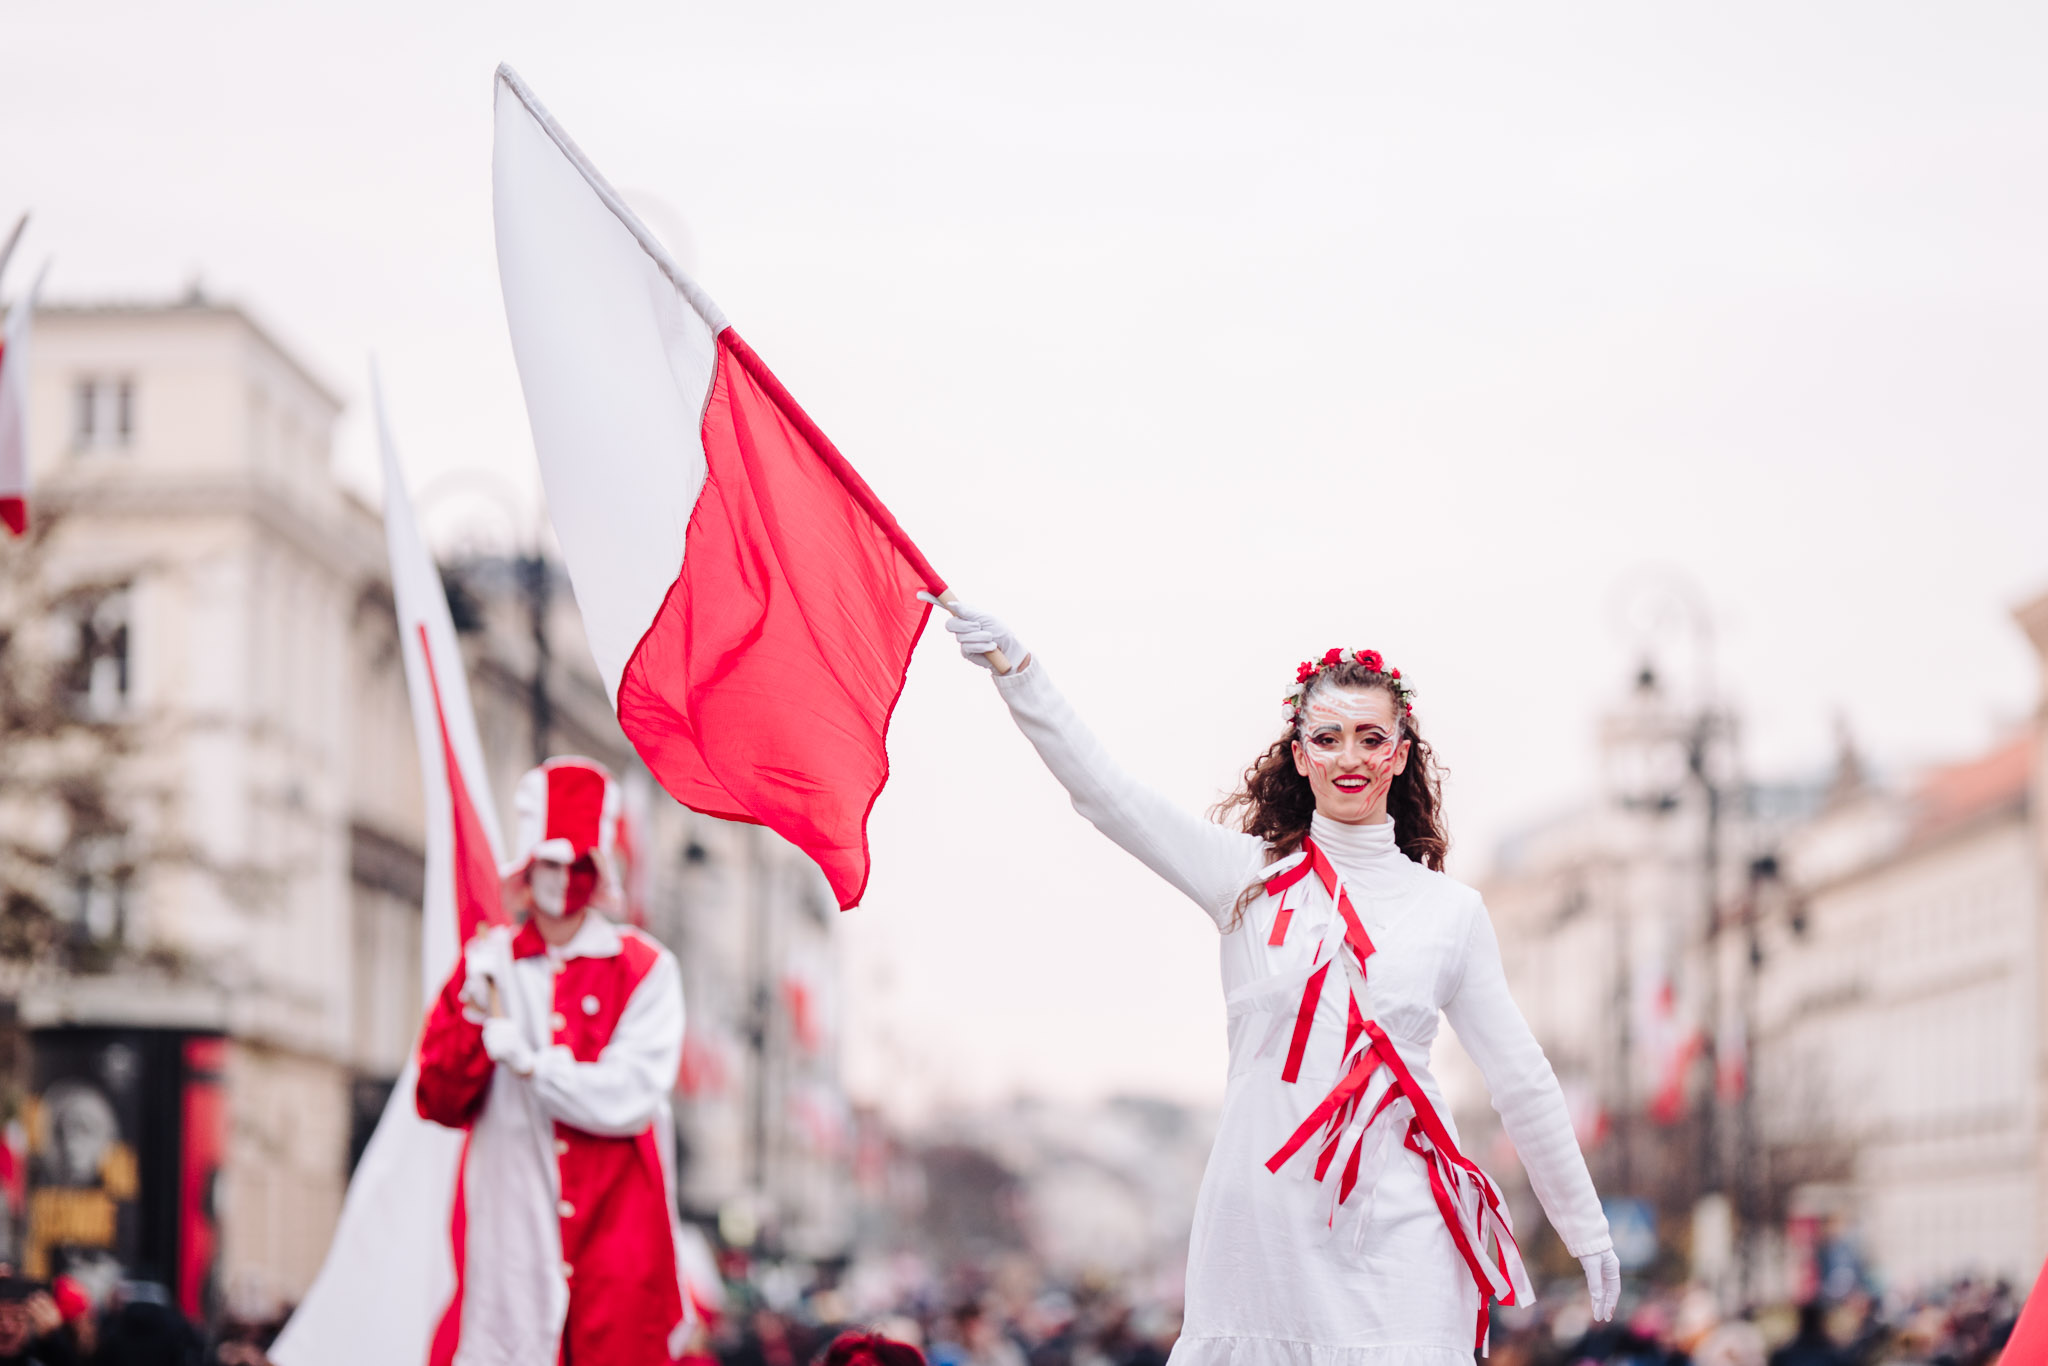 Stilt walkers in red and white costumes marching through the streets; in the foreground, a smiling woman waving a Polish flag.